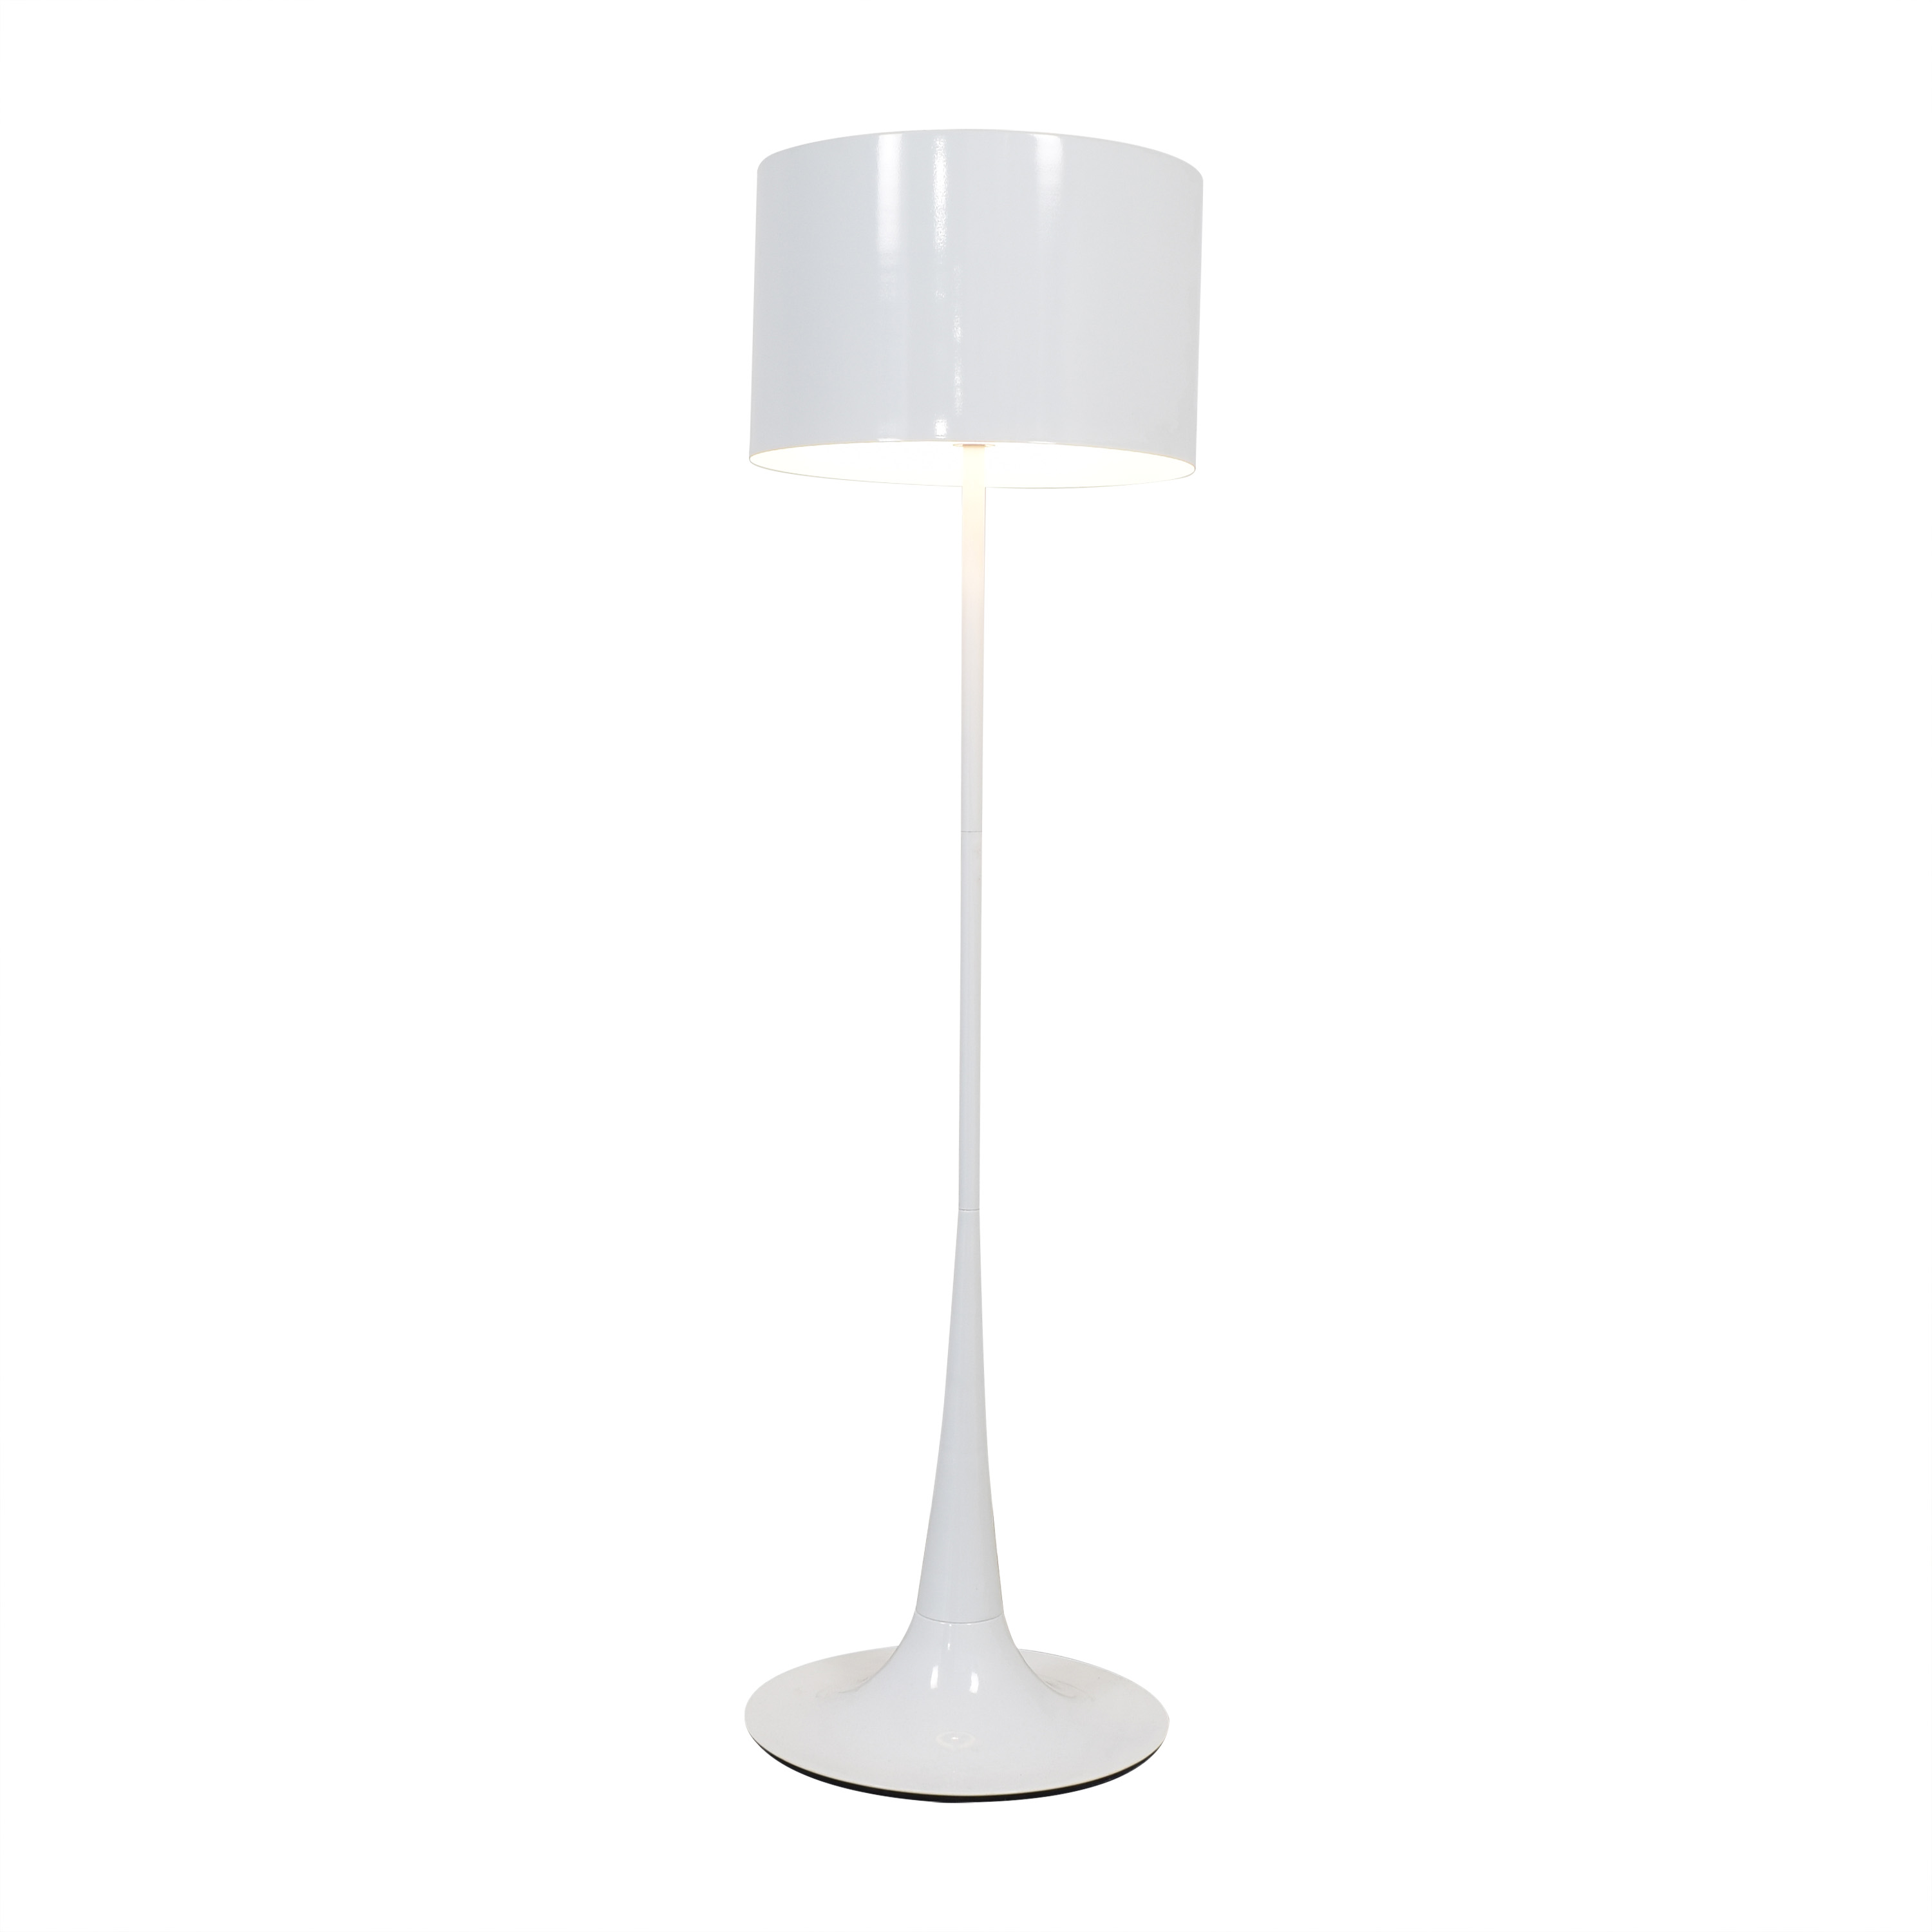 France and Son France & Son White Floor Lamp ct